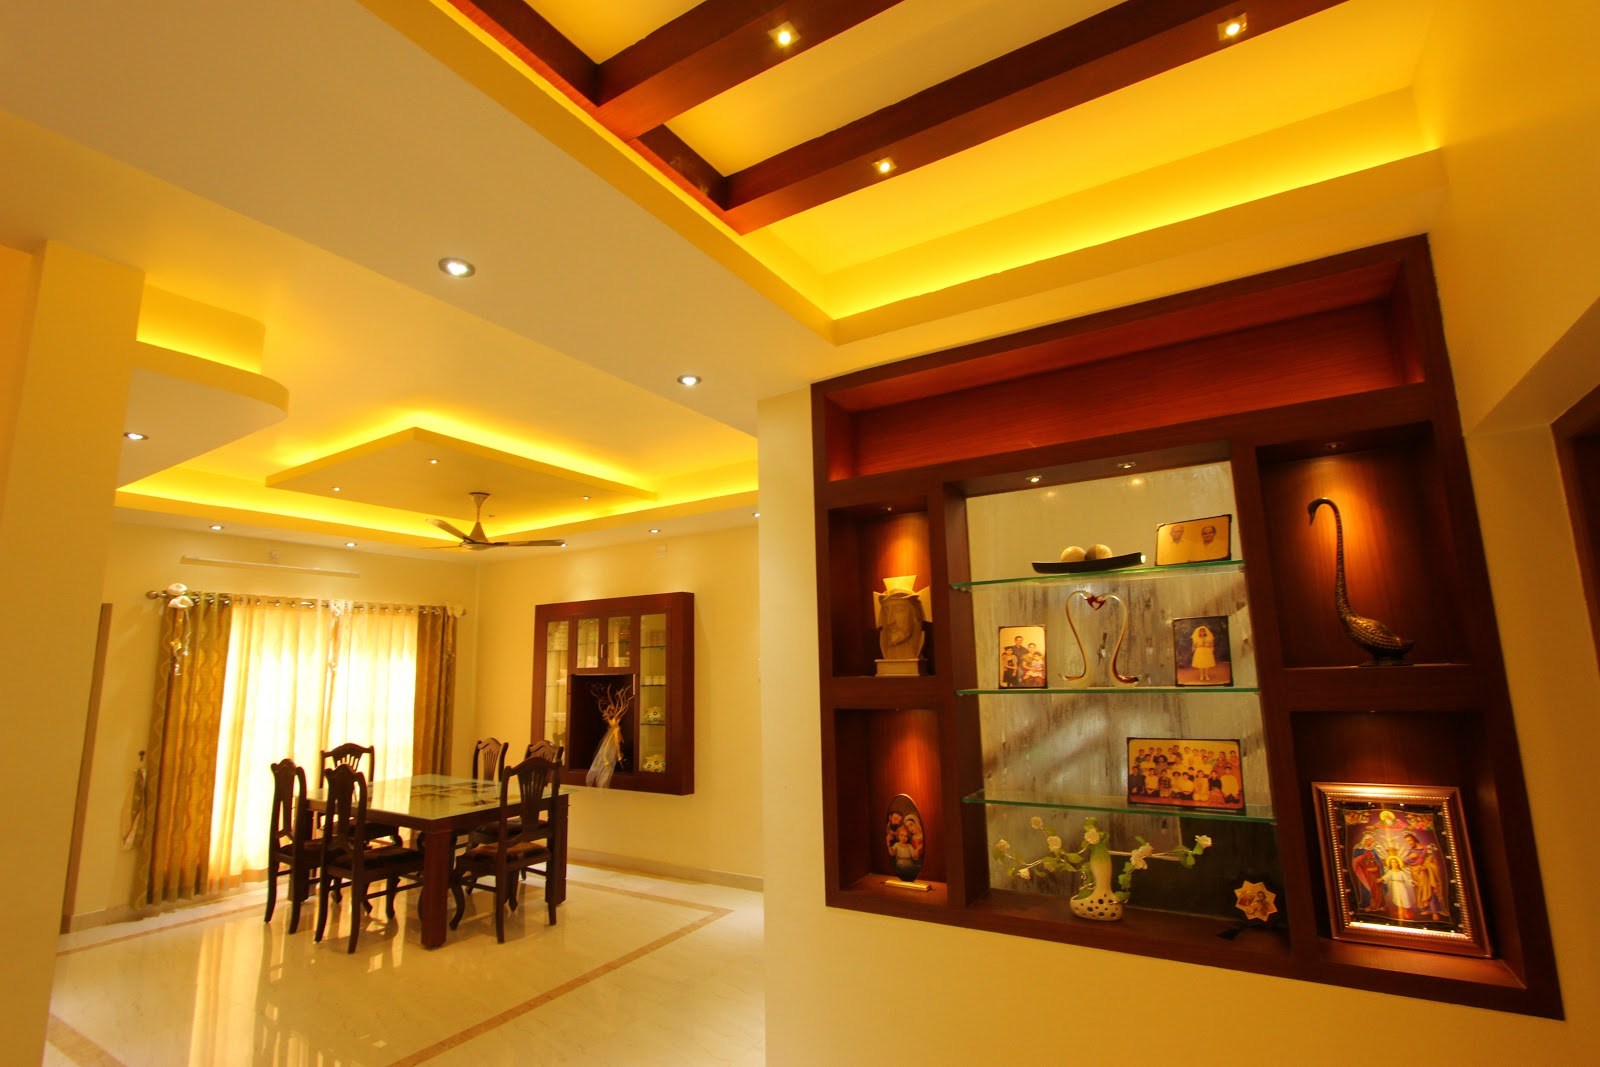 Shilpakala interiors award winning home interior design for Interior decoration company